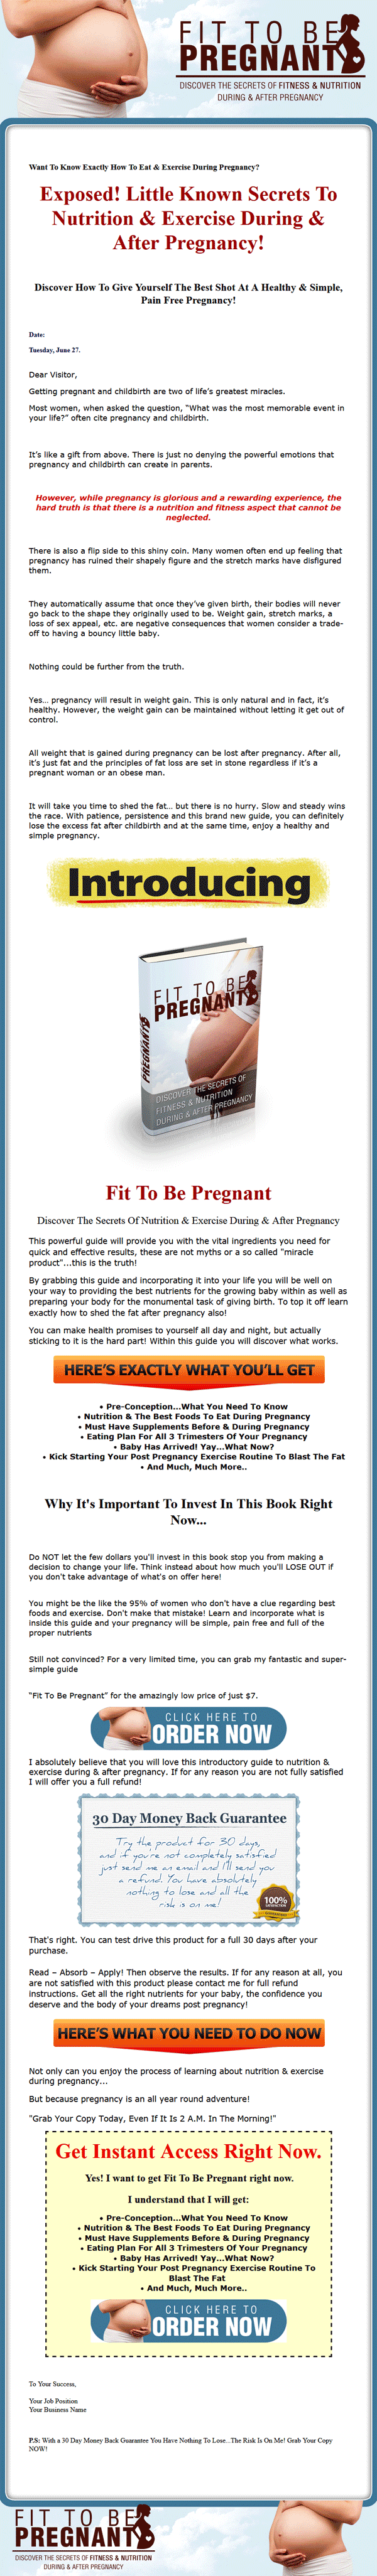 Pregnancy Fitness Ebook and Audio with Master Resale Rights